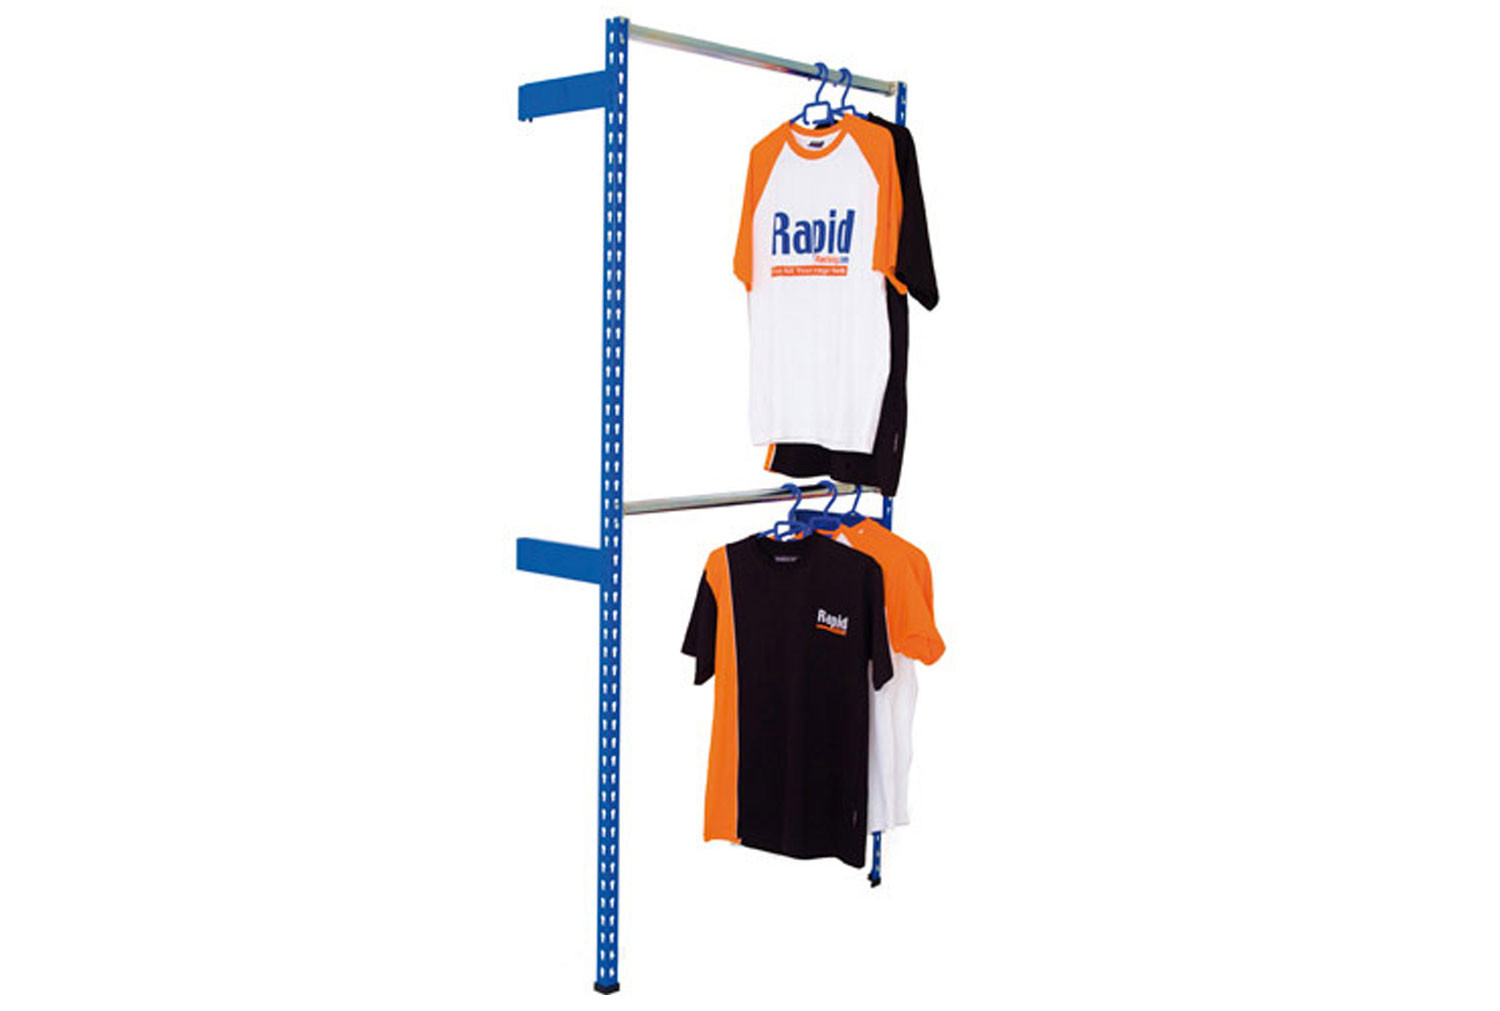 Rapid 2 Wall Mounted Garment Rack